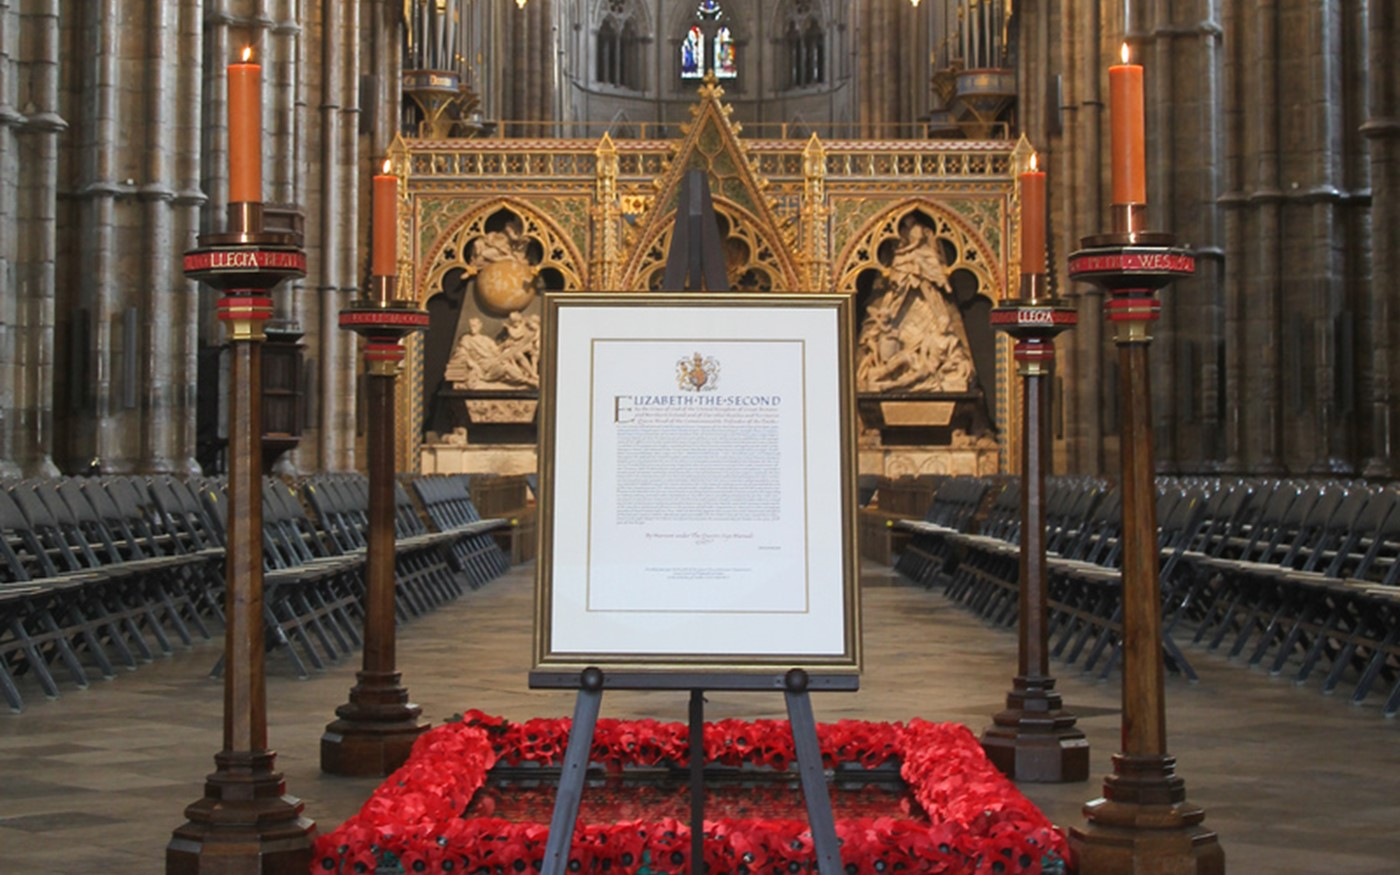 The Royal Charter is displayed in the Abbey